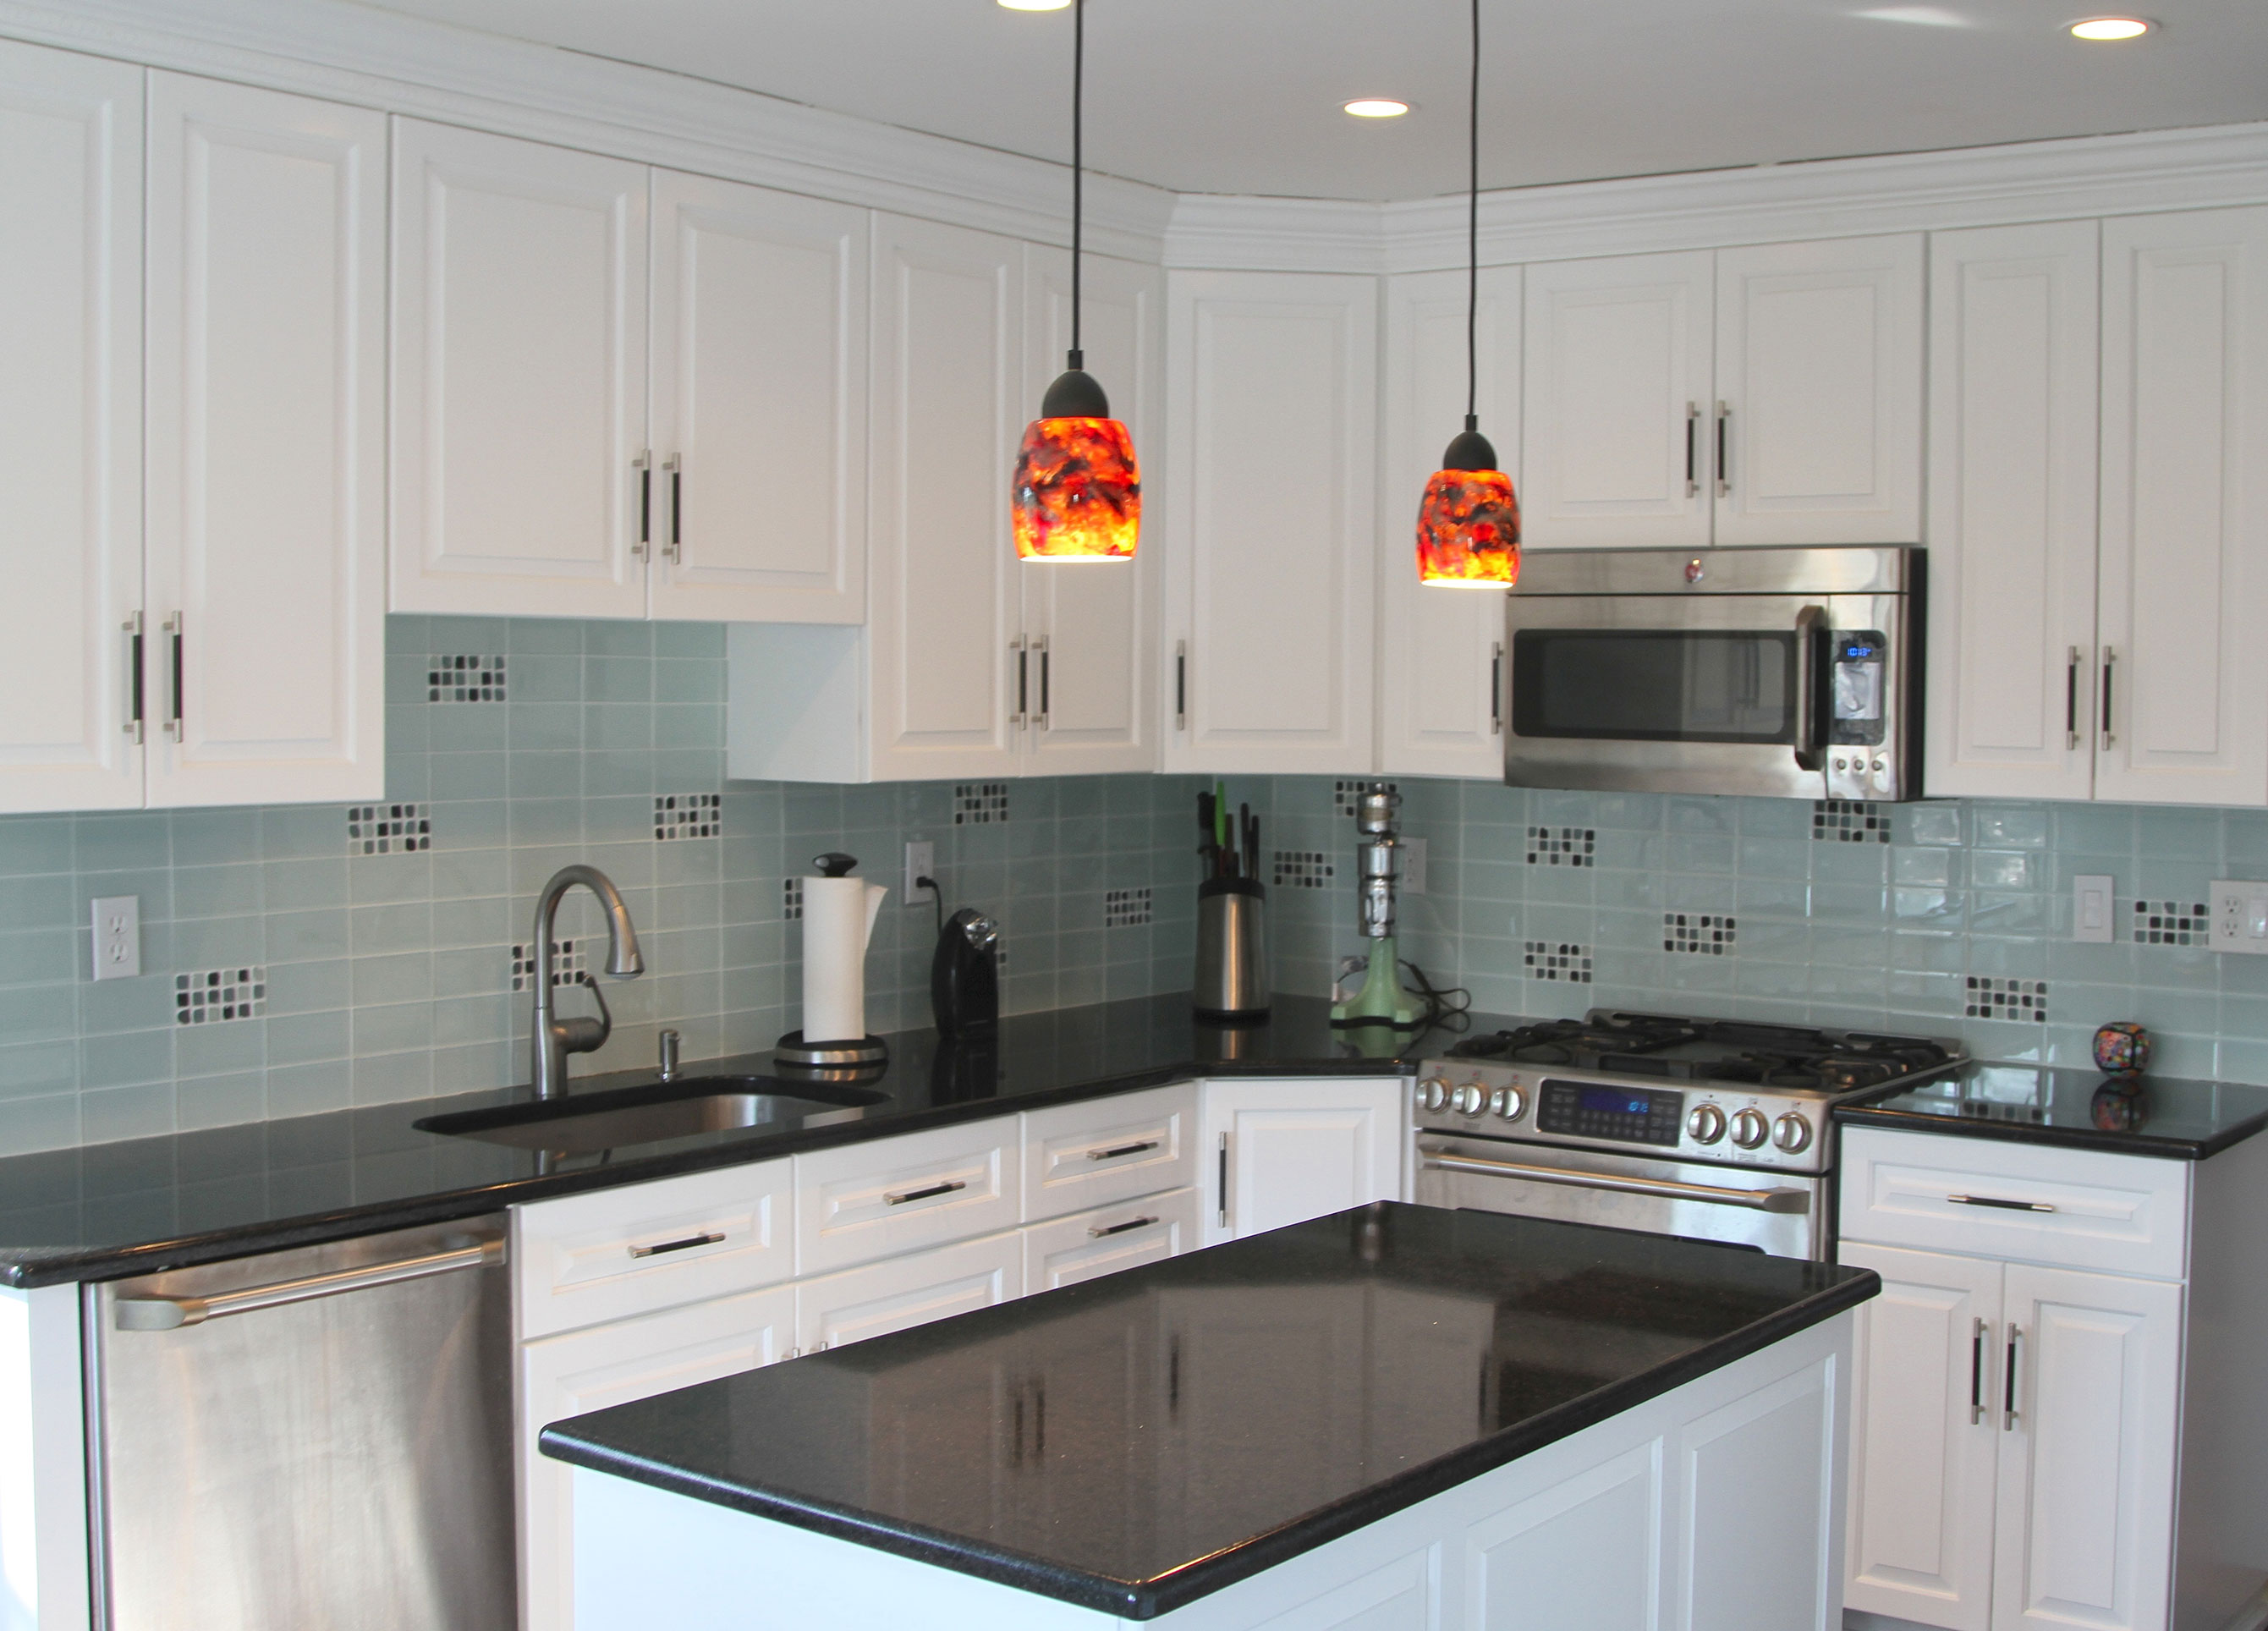 finished countertops, countertop layout